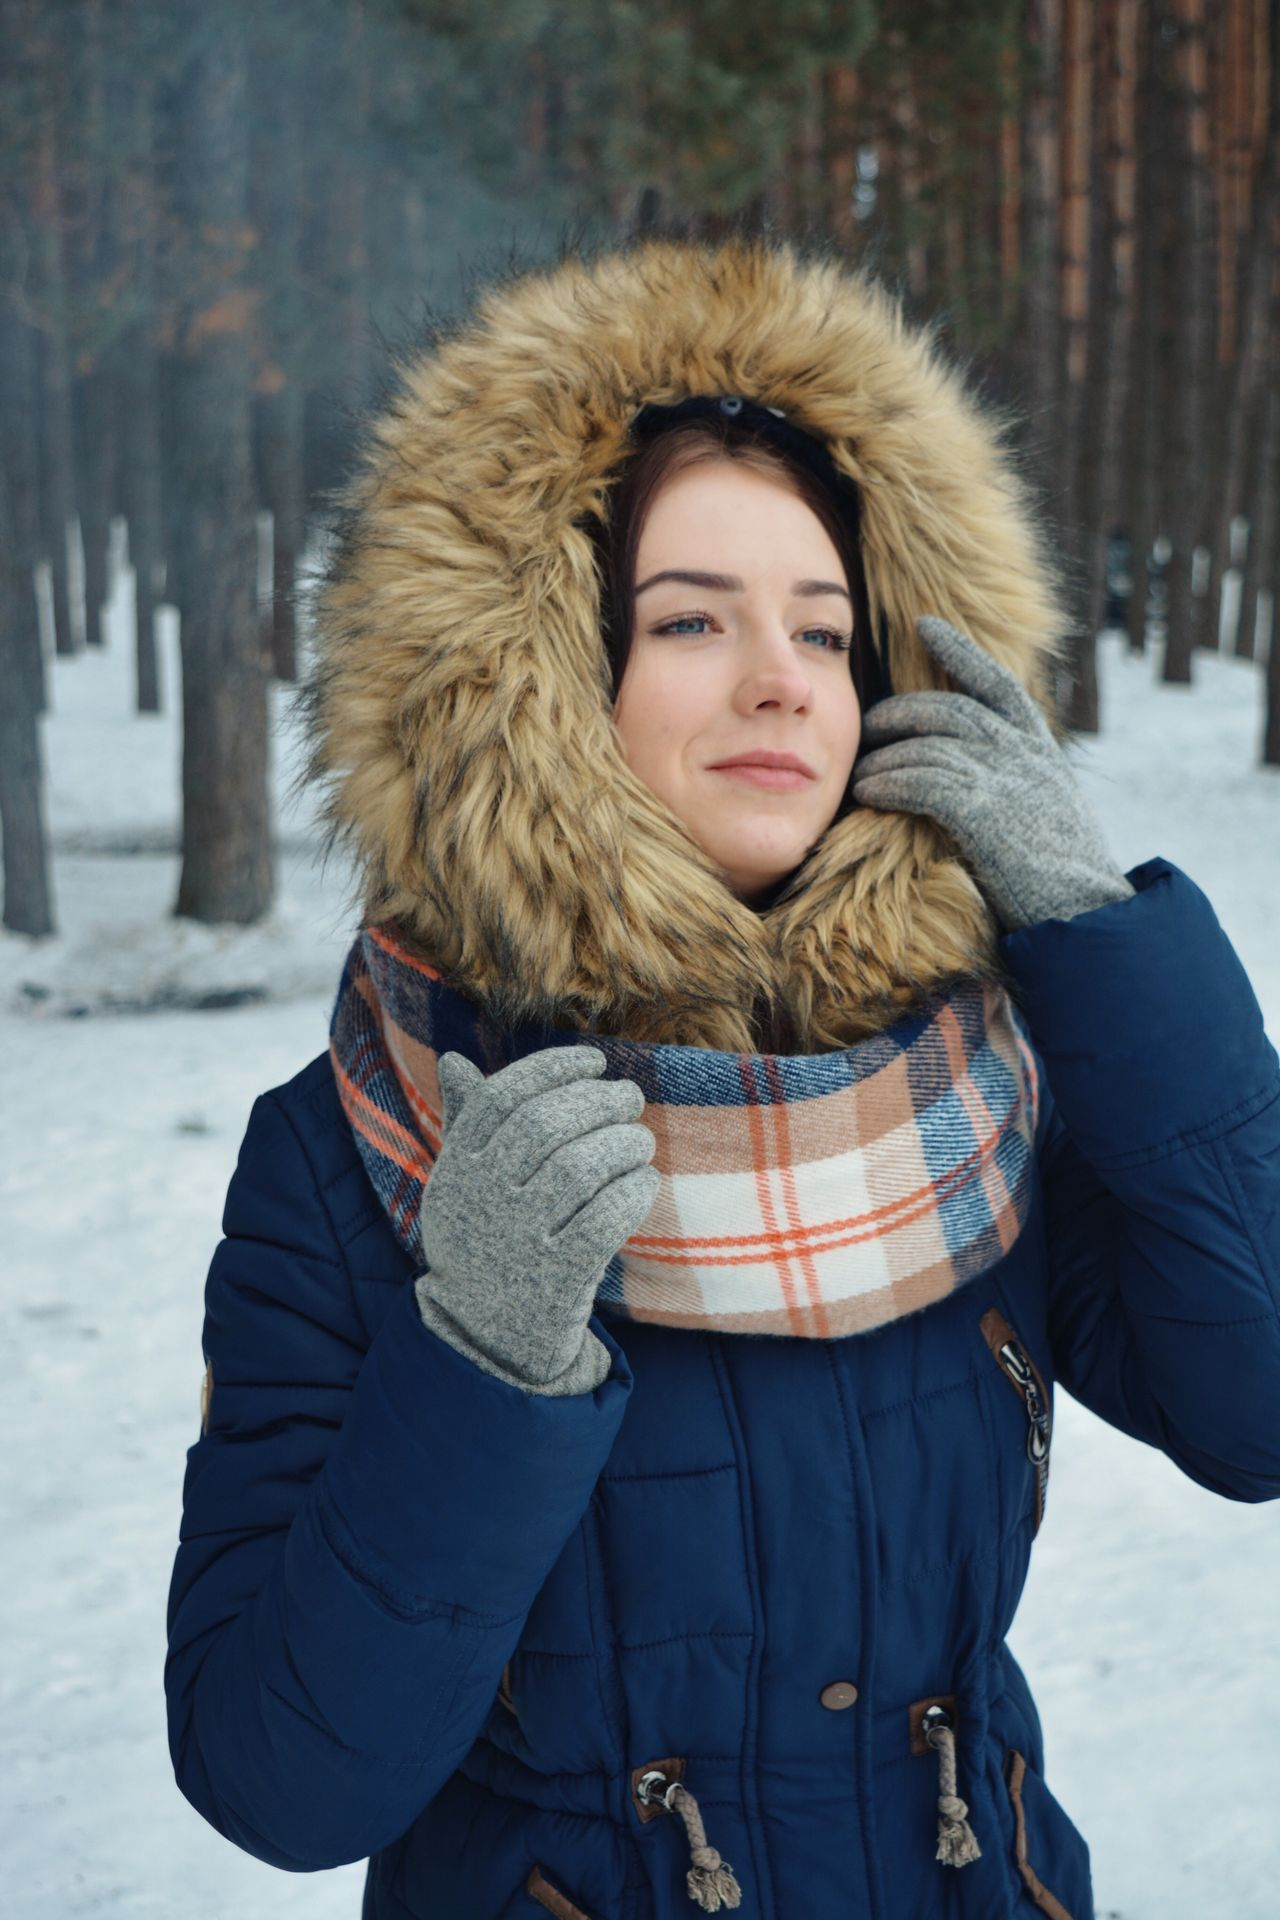 Outdoors winter potrait Winter Cold Temperature Snow Warm Clothing Looking At Camera Portrait Young Adult Long Hair Fur One Person Scarf Lifestyles Blond Hair Outdoors Fur Hat Young Women Leisure Activity Standing Nature Day